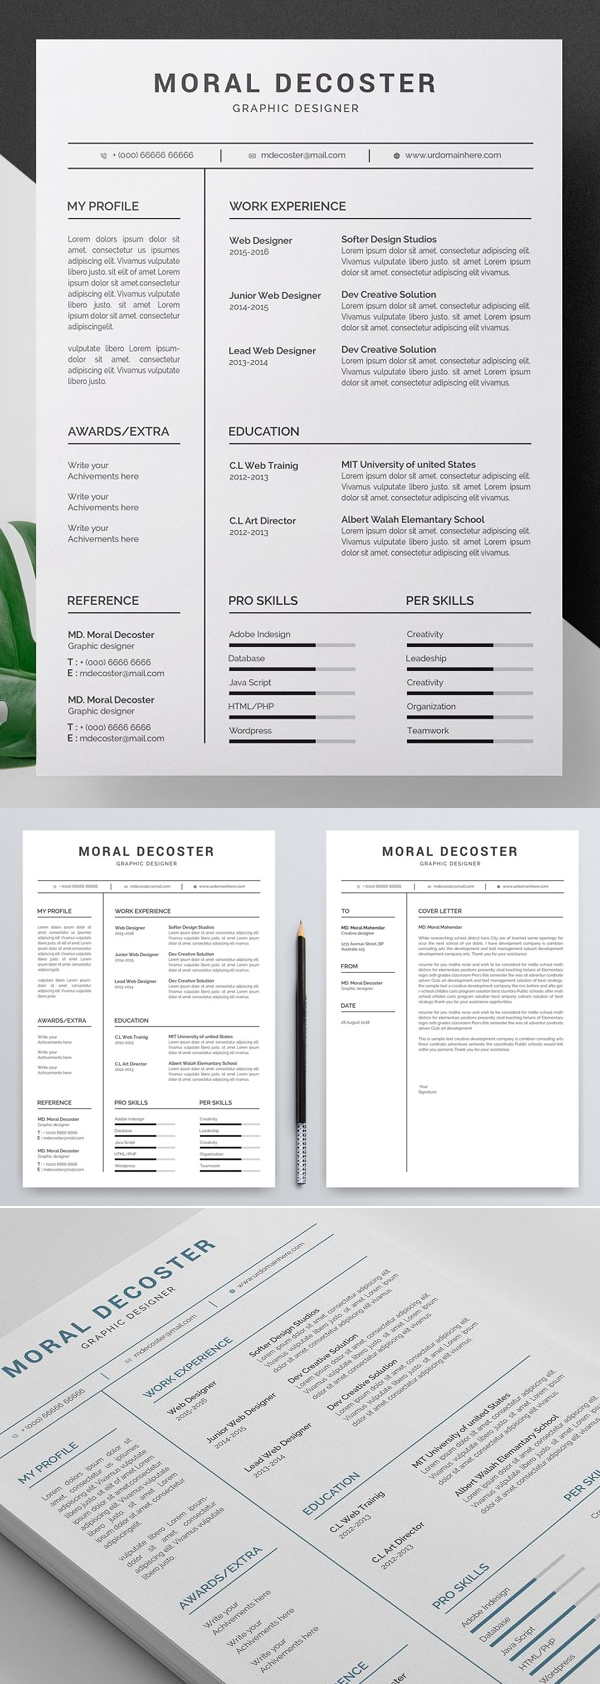 50 Best Resume Templates Of 2020 - 4